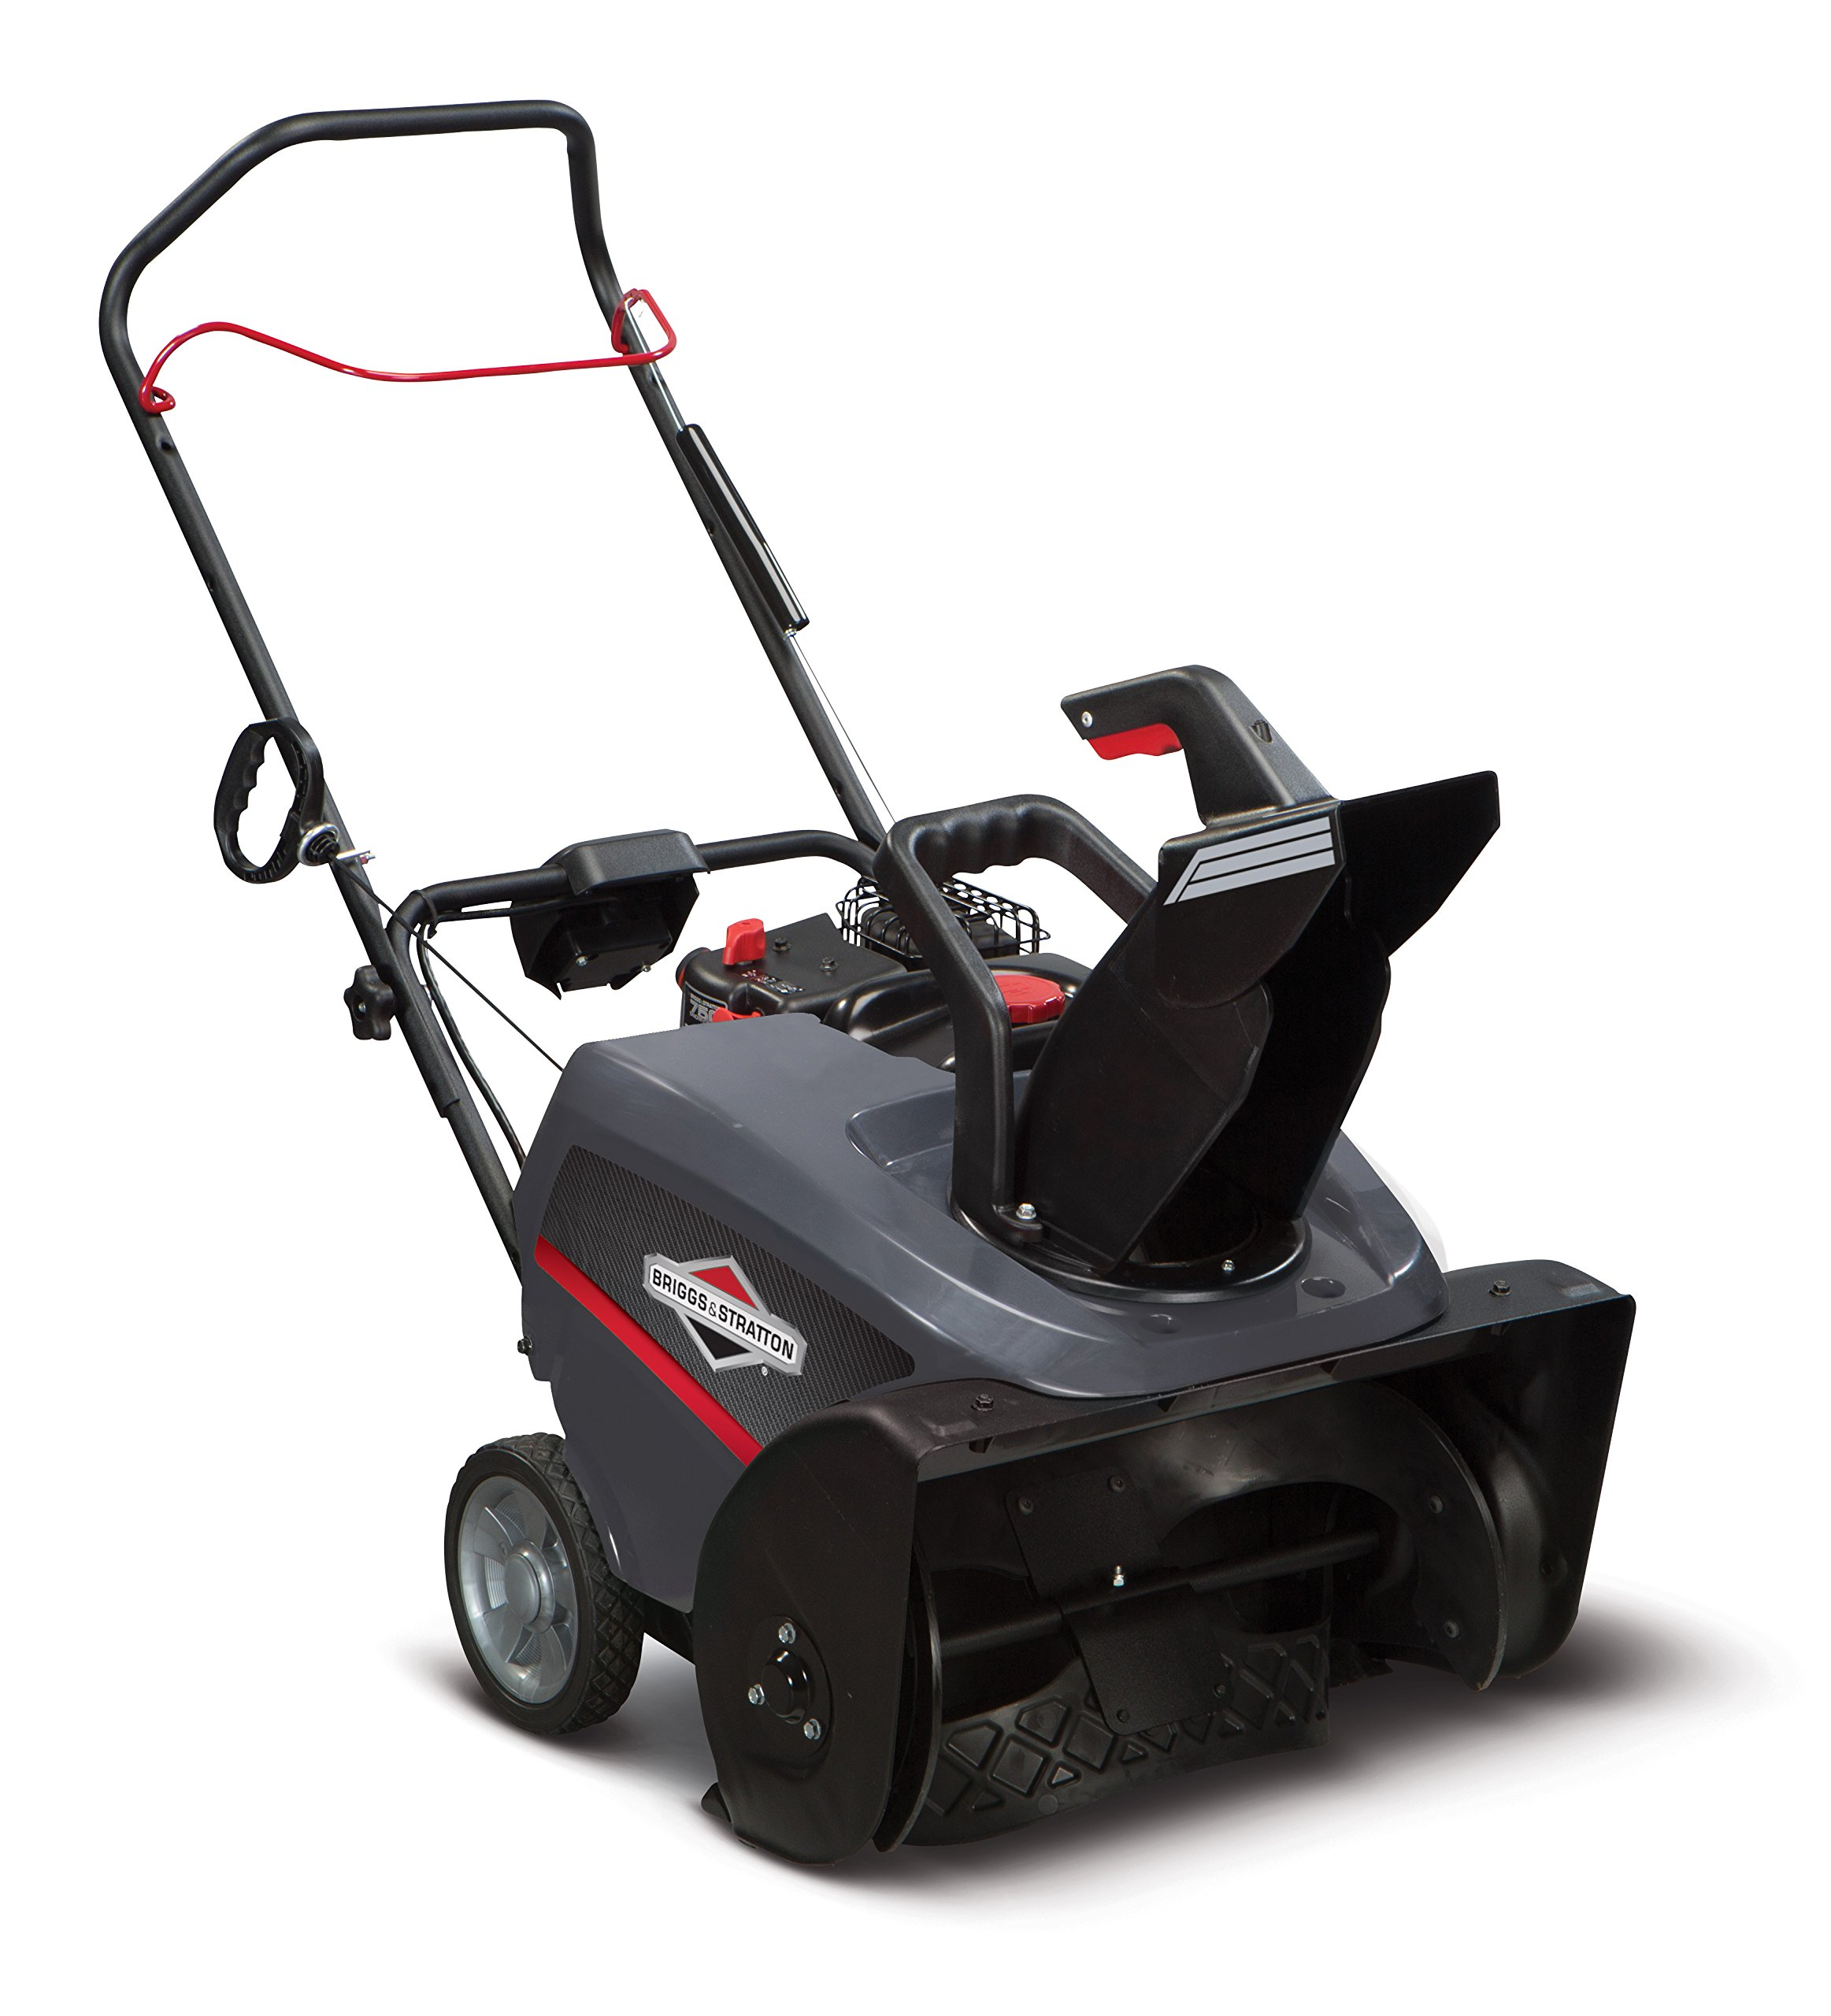 Briggs & Stratton 1696509 Single Stage Snow Thrower with 750 Snow Series 163cc Engine and Electric Start, 22-Inch